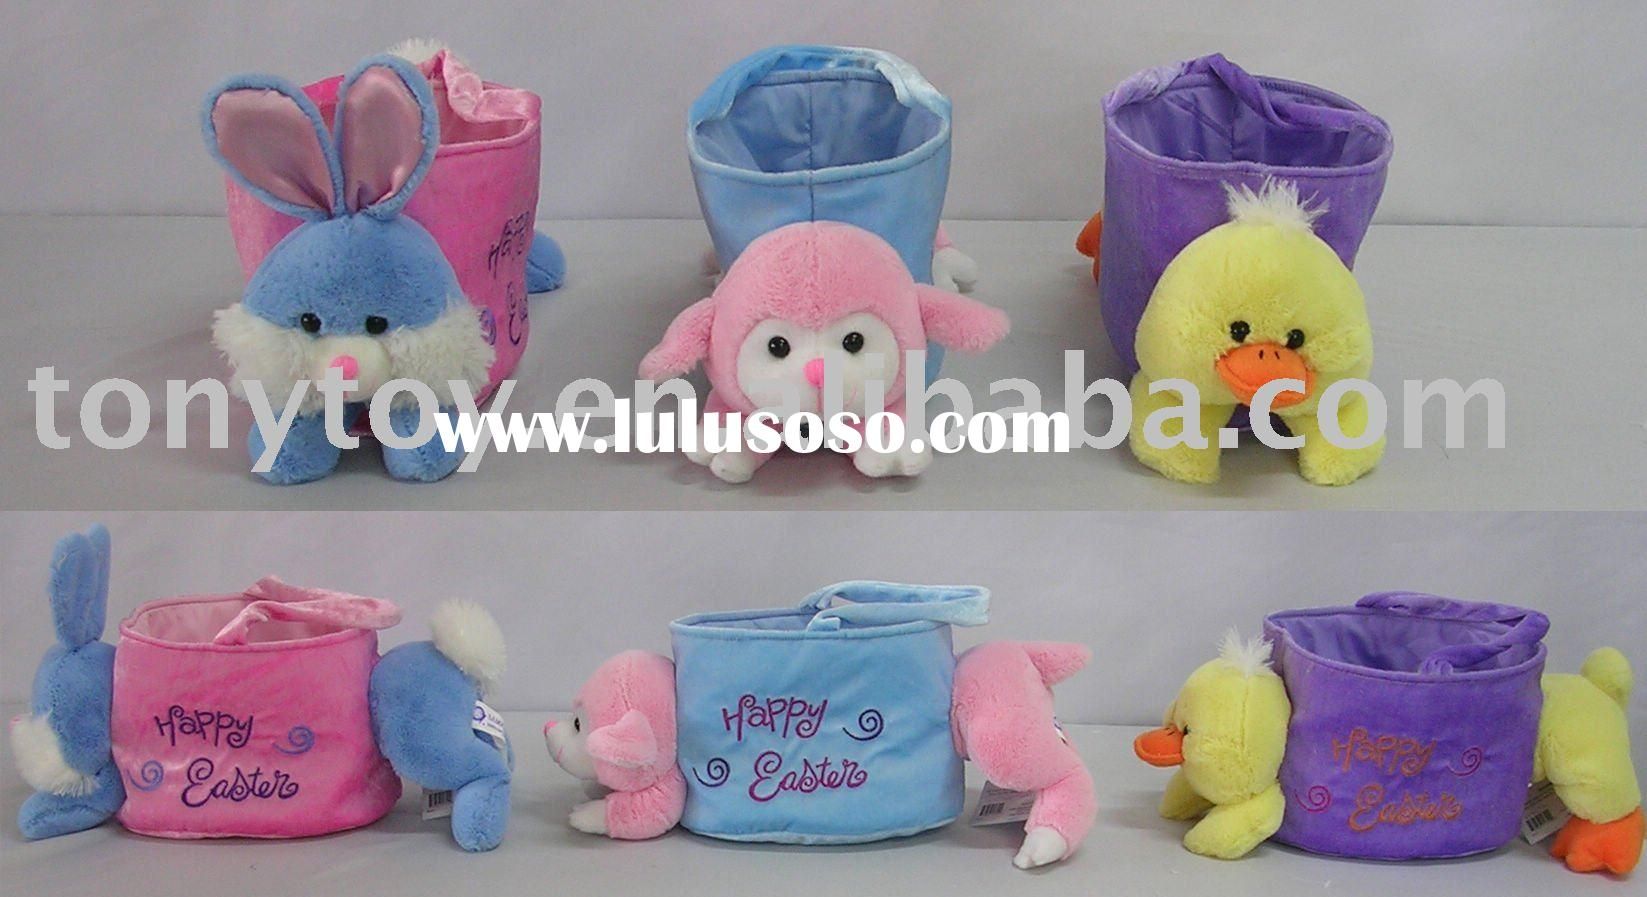 Plush Easter basket,stuffed basket,plush basket,soft basket,plush rabbit,stuffed sheep,toy duck,plus